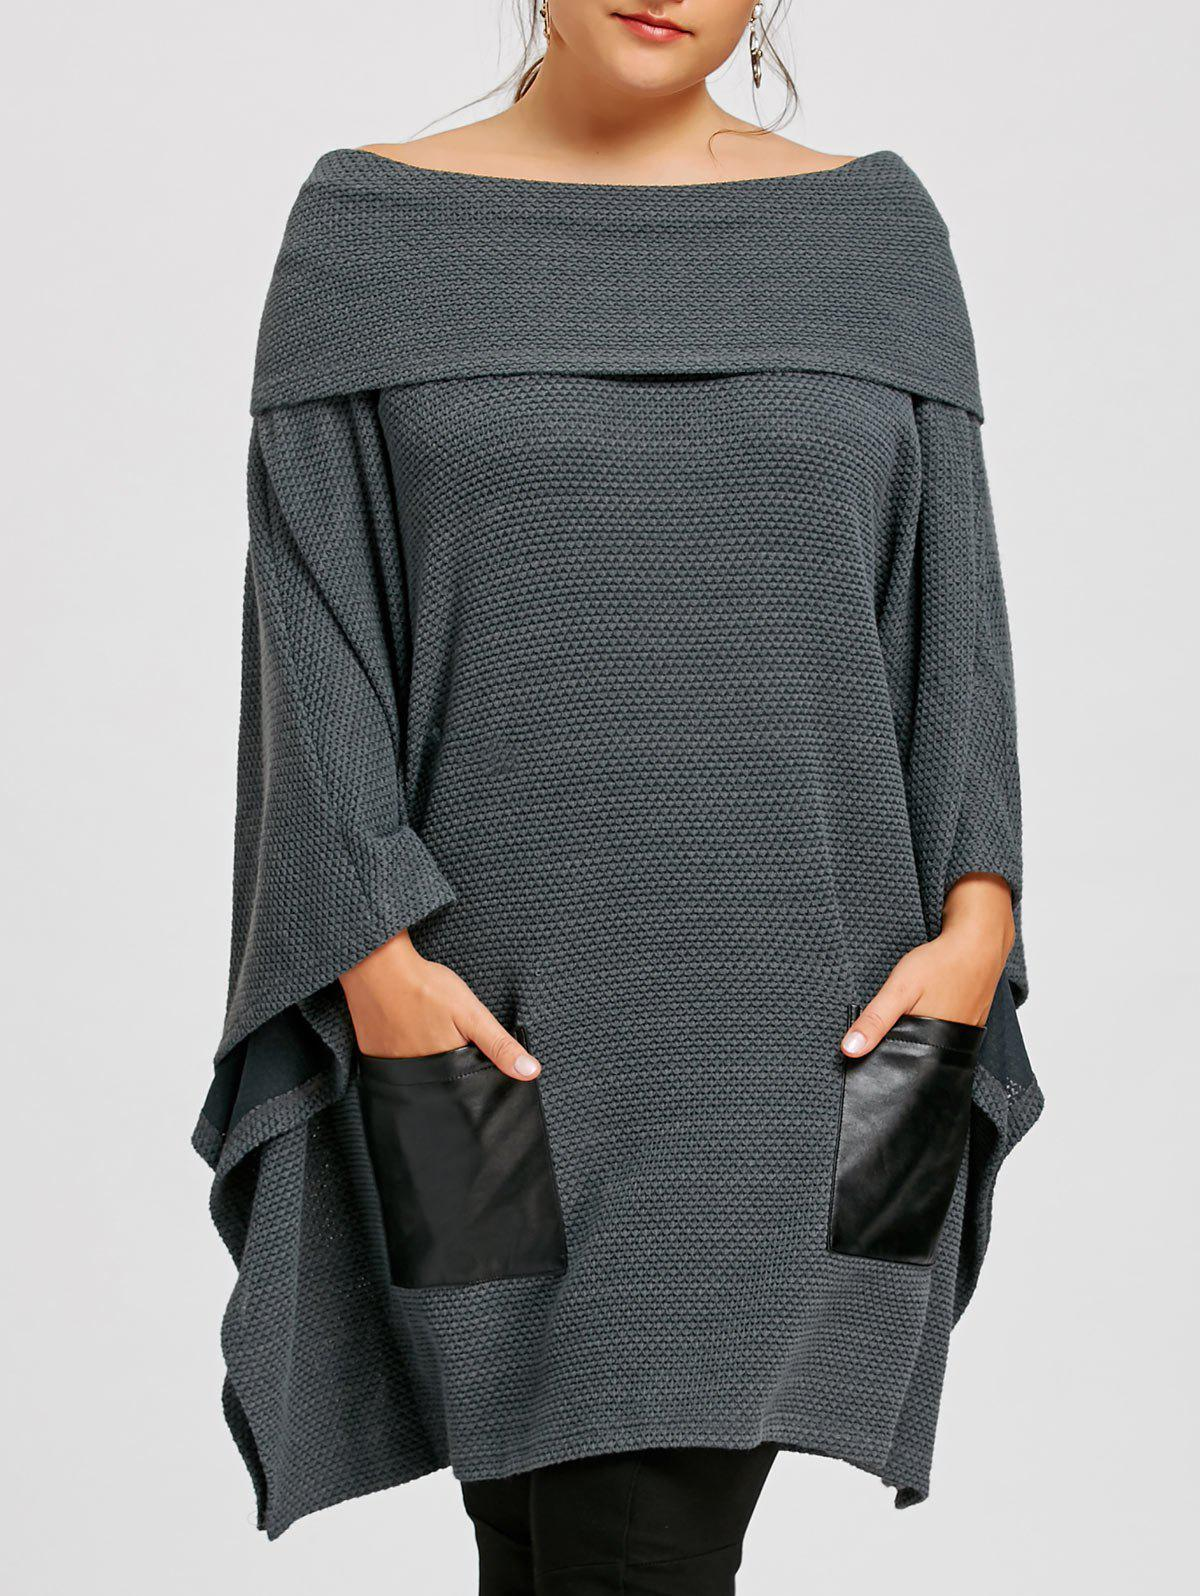 Plus Size Batwing Sleeve Off The Shoulder Top - GRAY 3XL